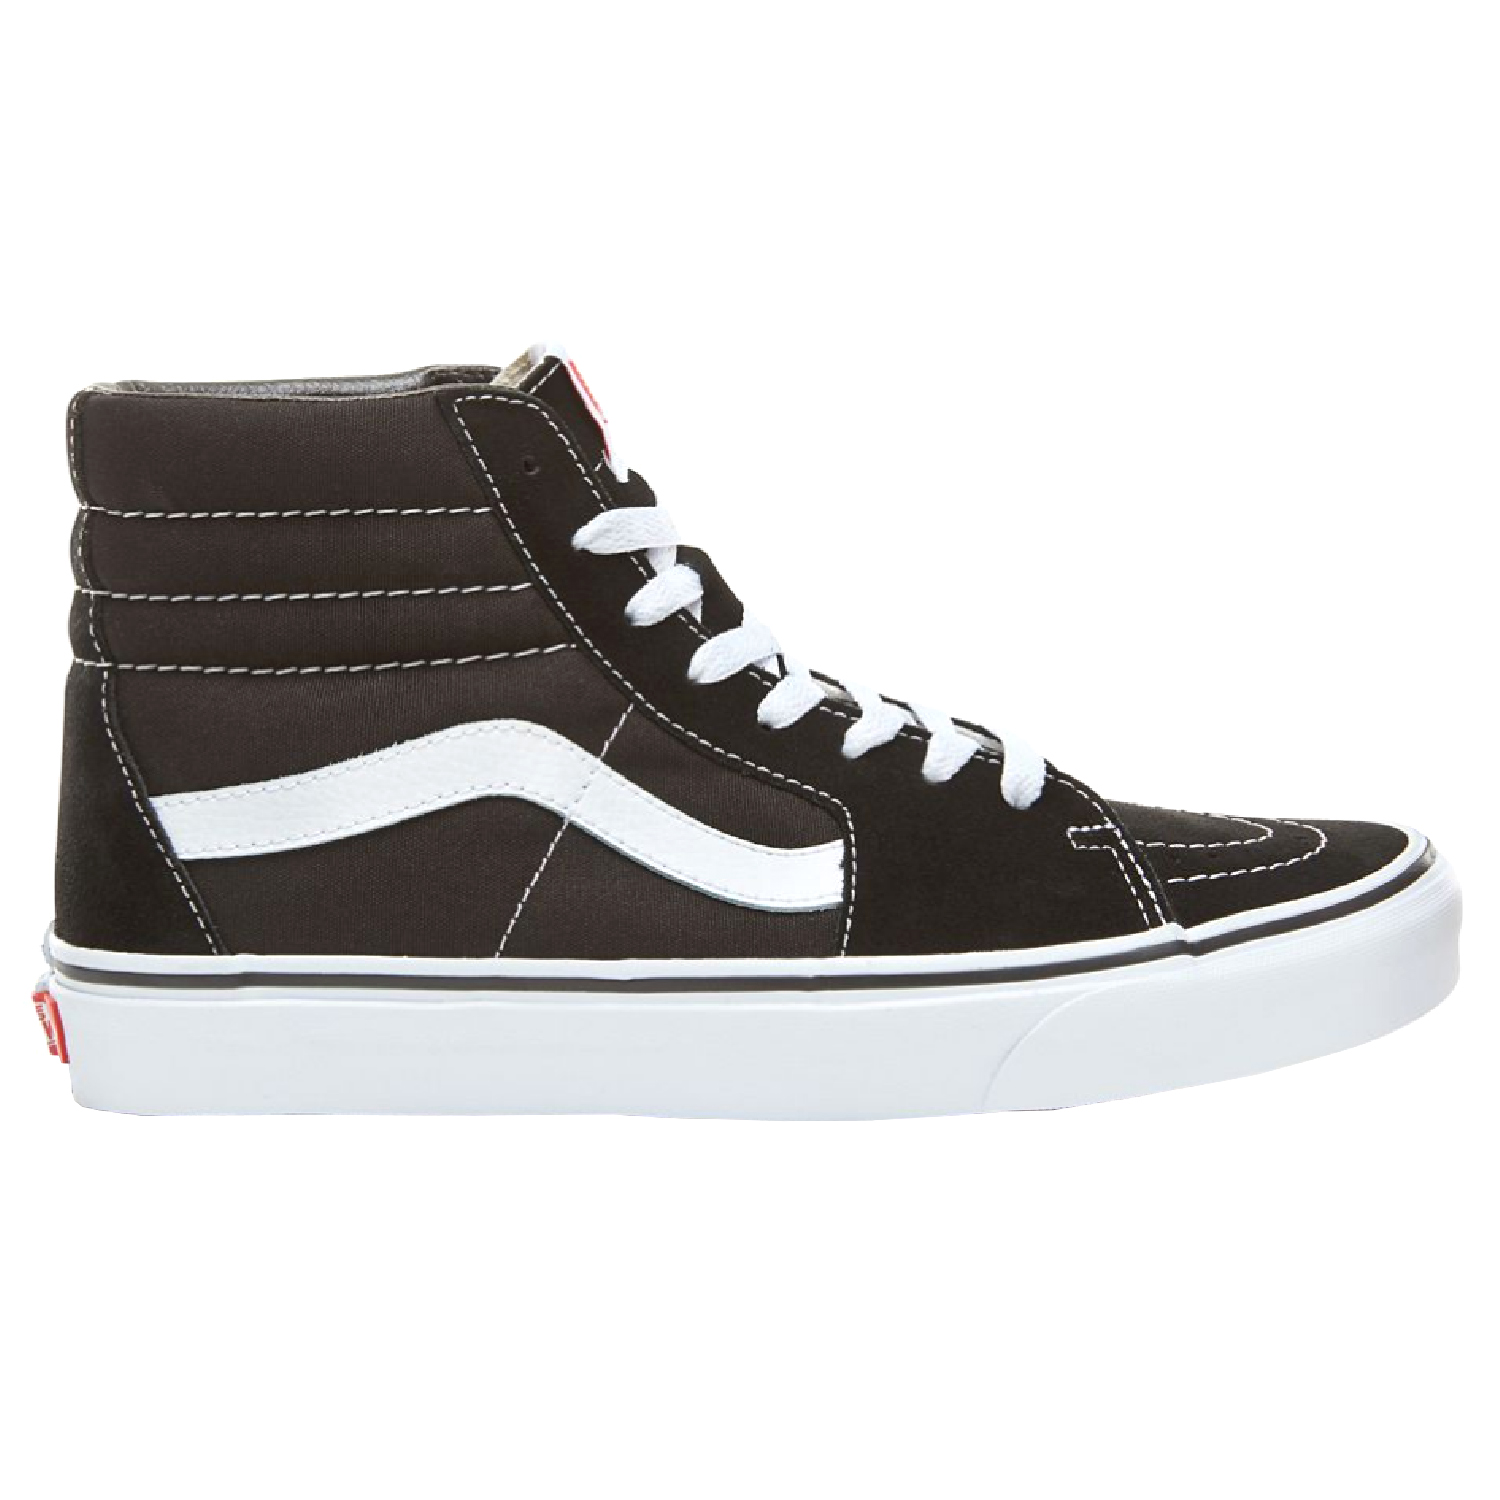 Vans Shoes, Clothing & Bags from Blackleaf